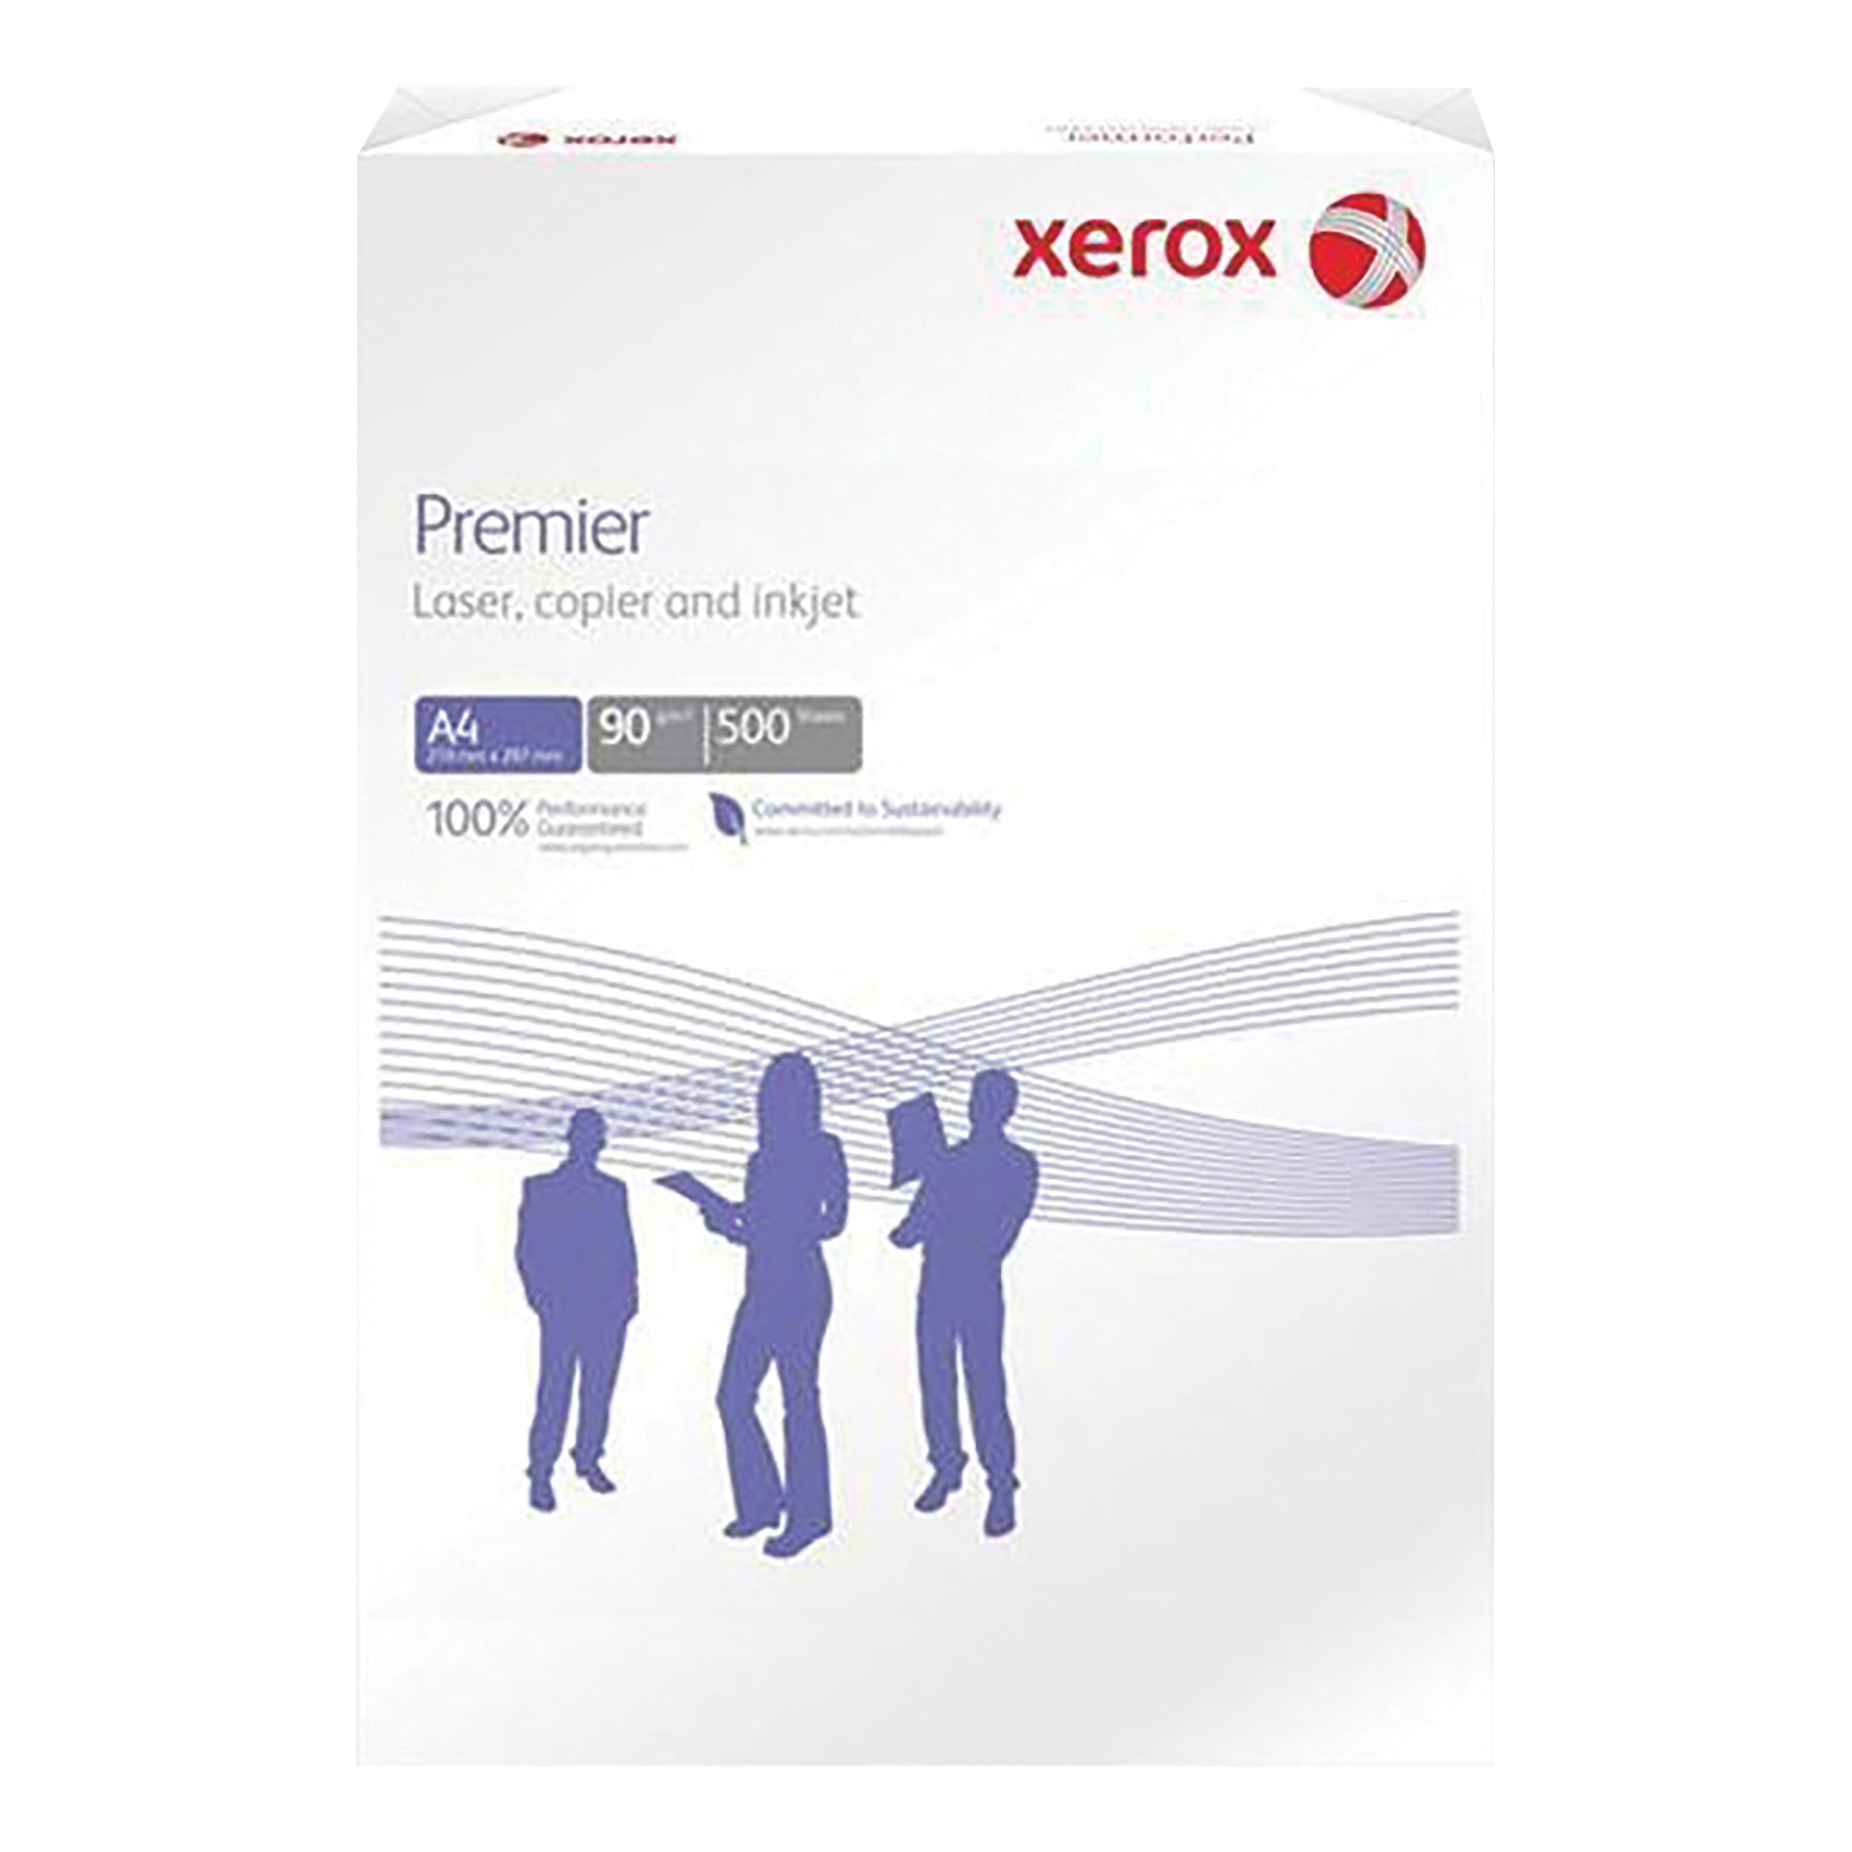 Xerox Premier Copier Paper Multifunctional Ream-Wrapped 90gsm A4 White Ref 62324 500 Sheets